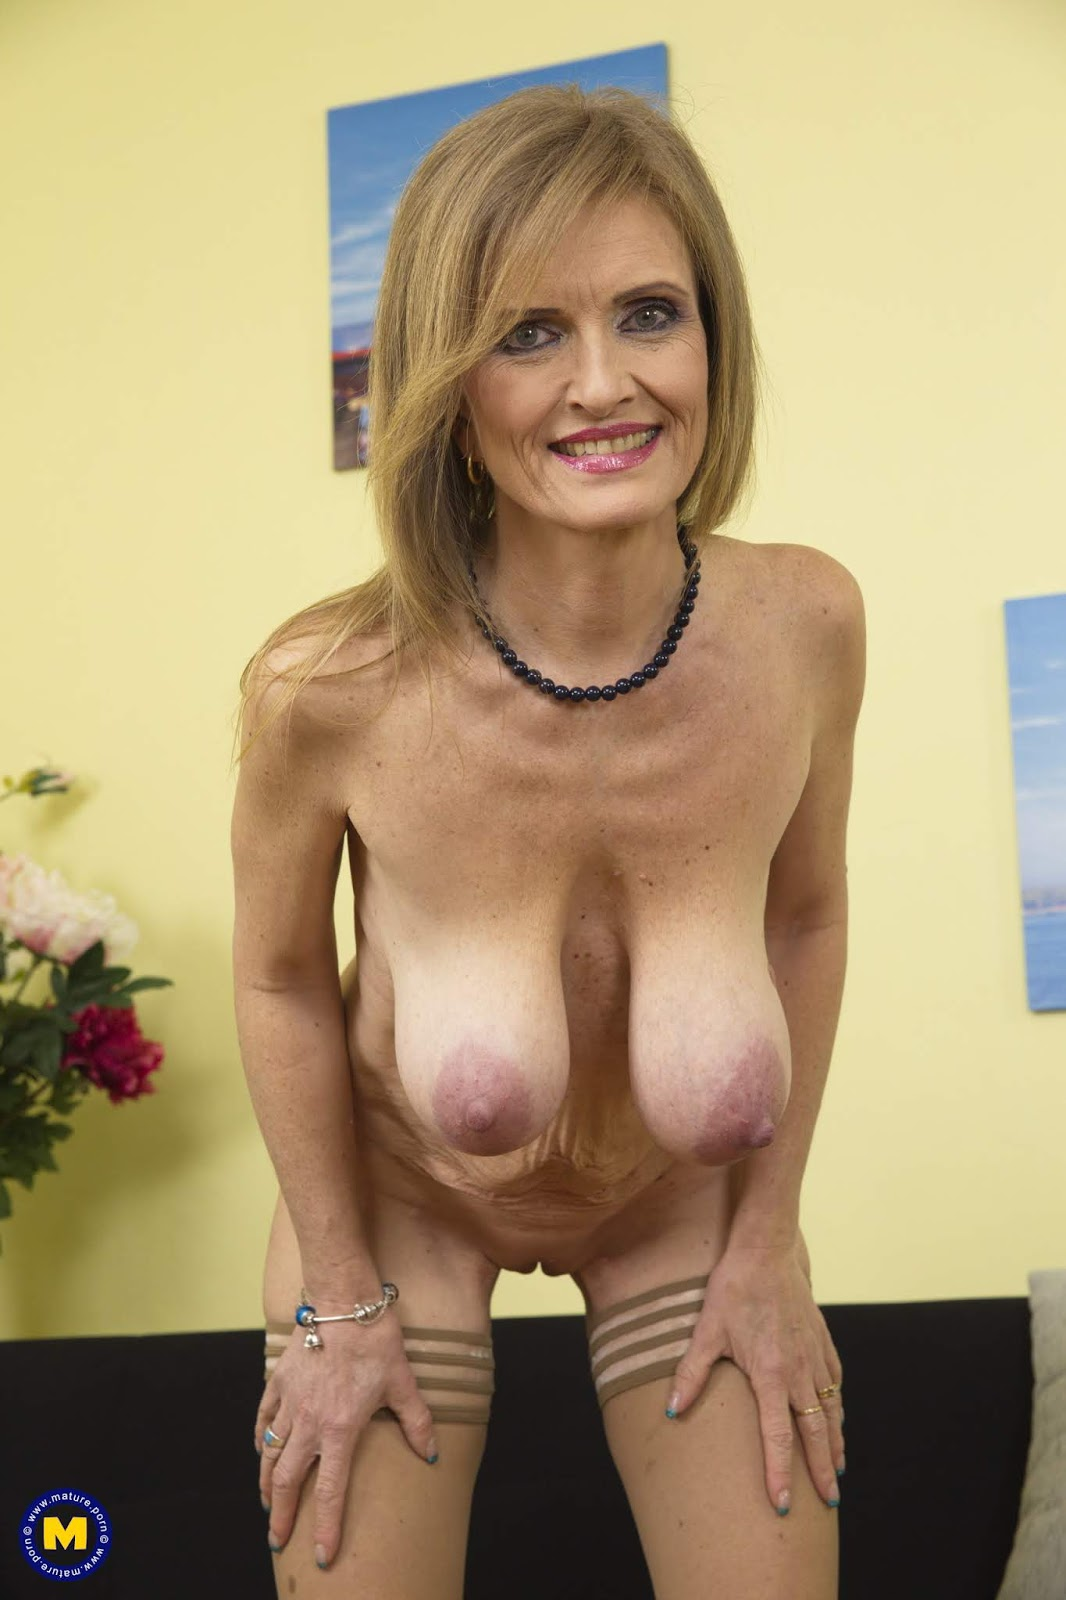 Big Titts Free Porn Video